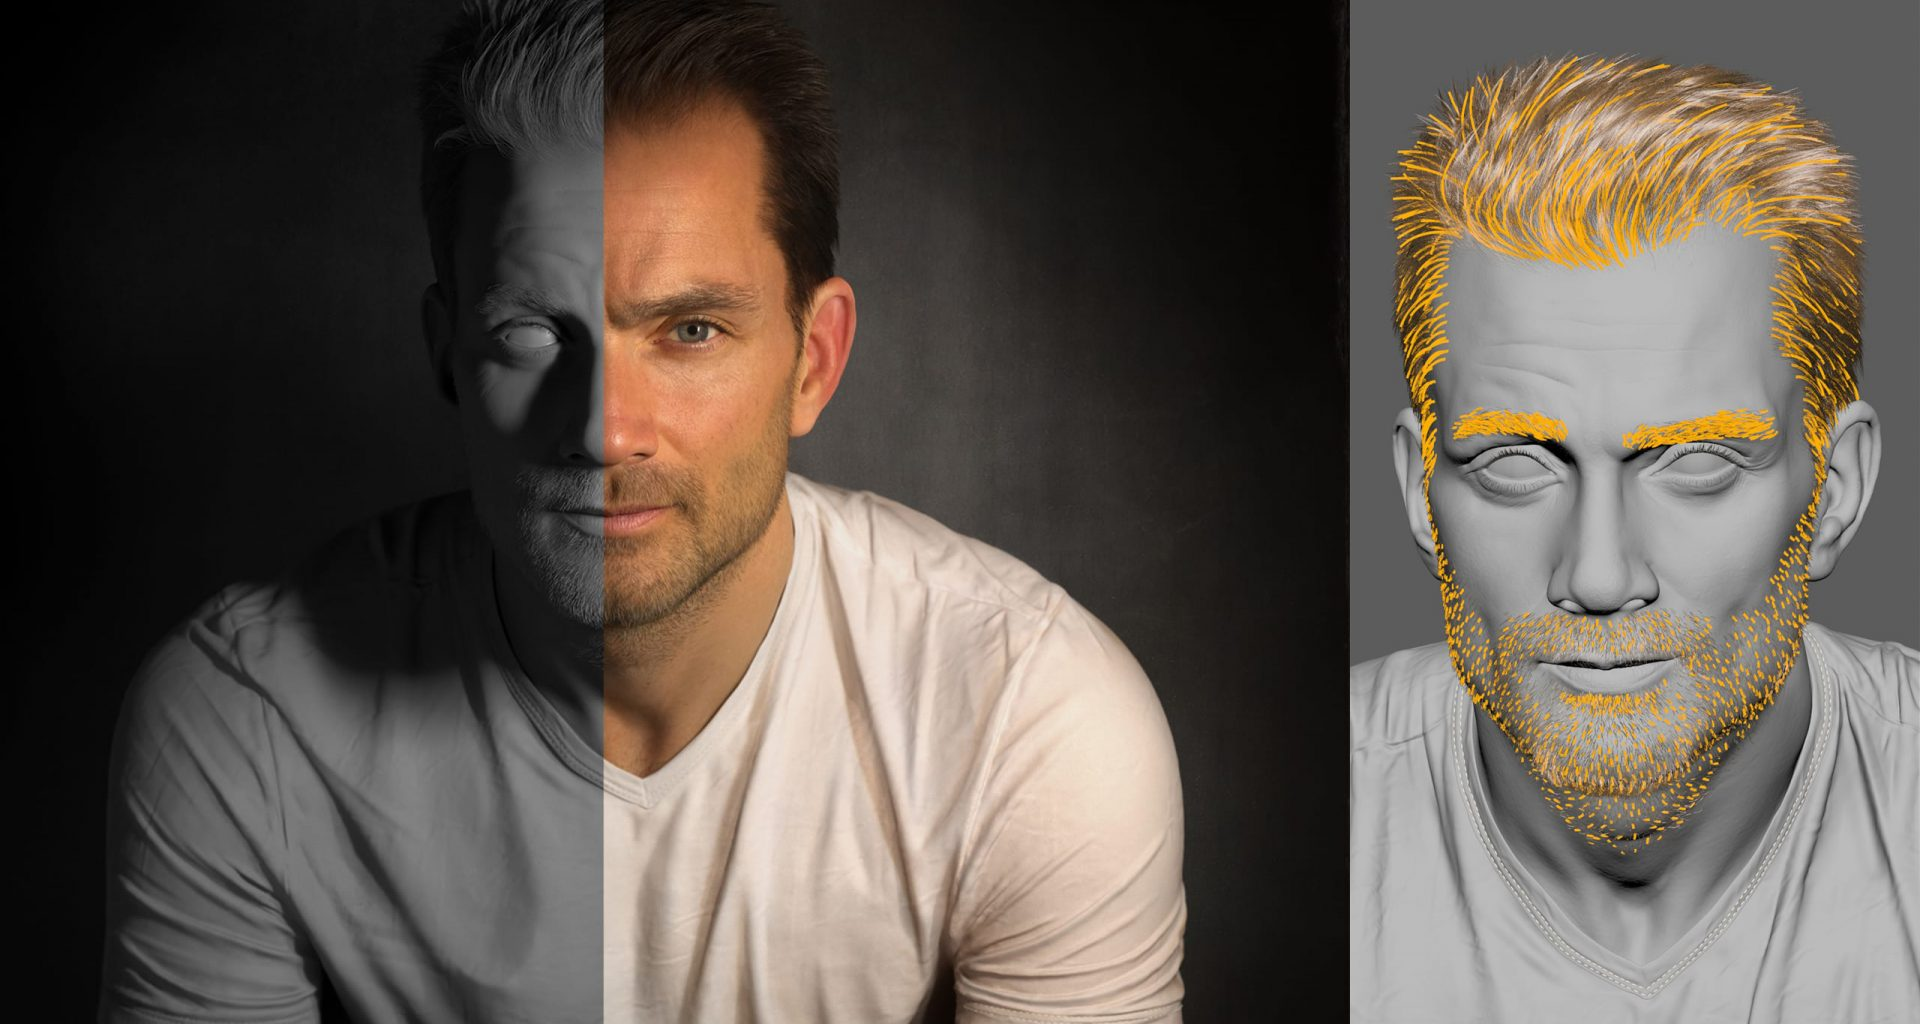 A breakdown of the portrait of Scott Eaton by Ian Spriggs, 3D artists specialized in digital humans